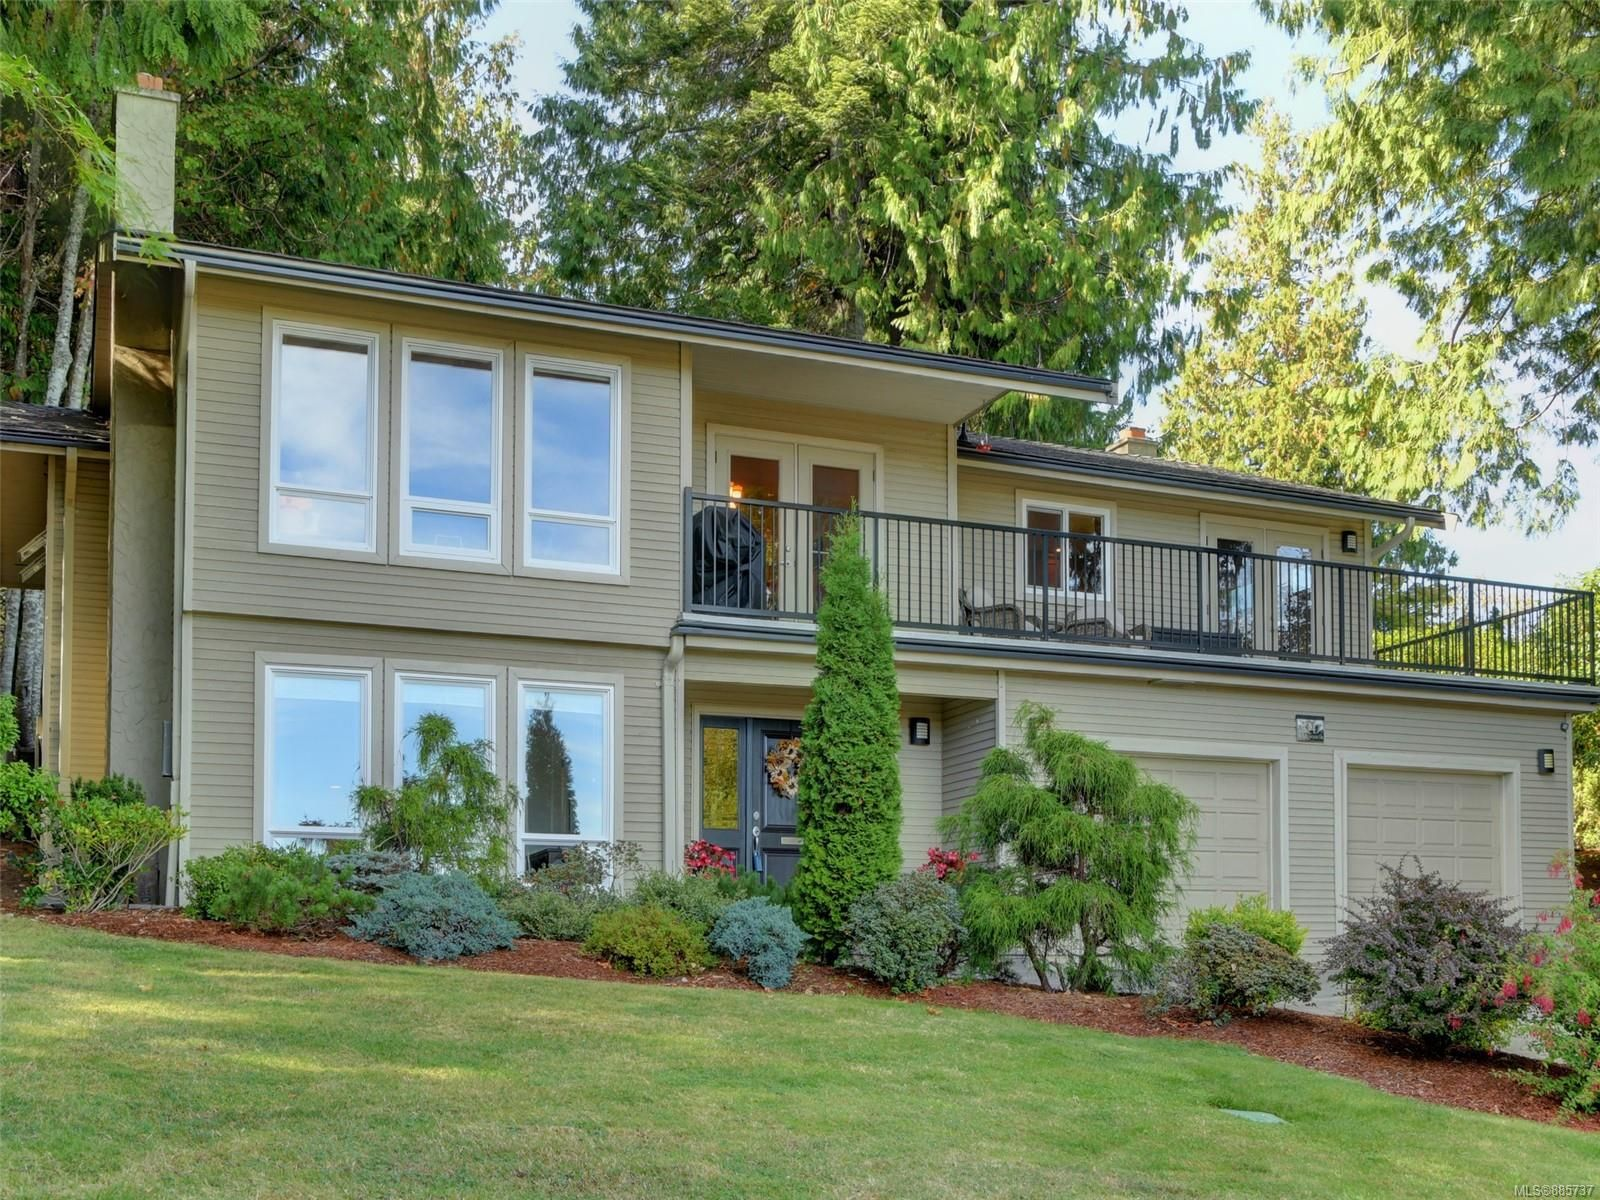 Main Photo: 4747 Amblewood Dr in : SE Cordova Bay House for sale (Saanich East)  : MLS®# 885737